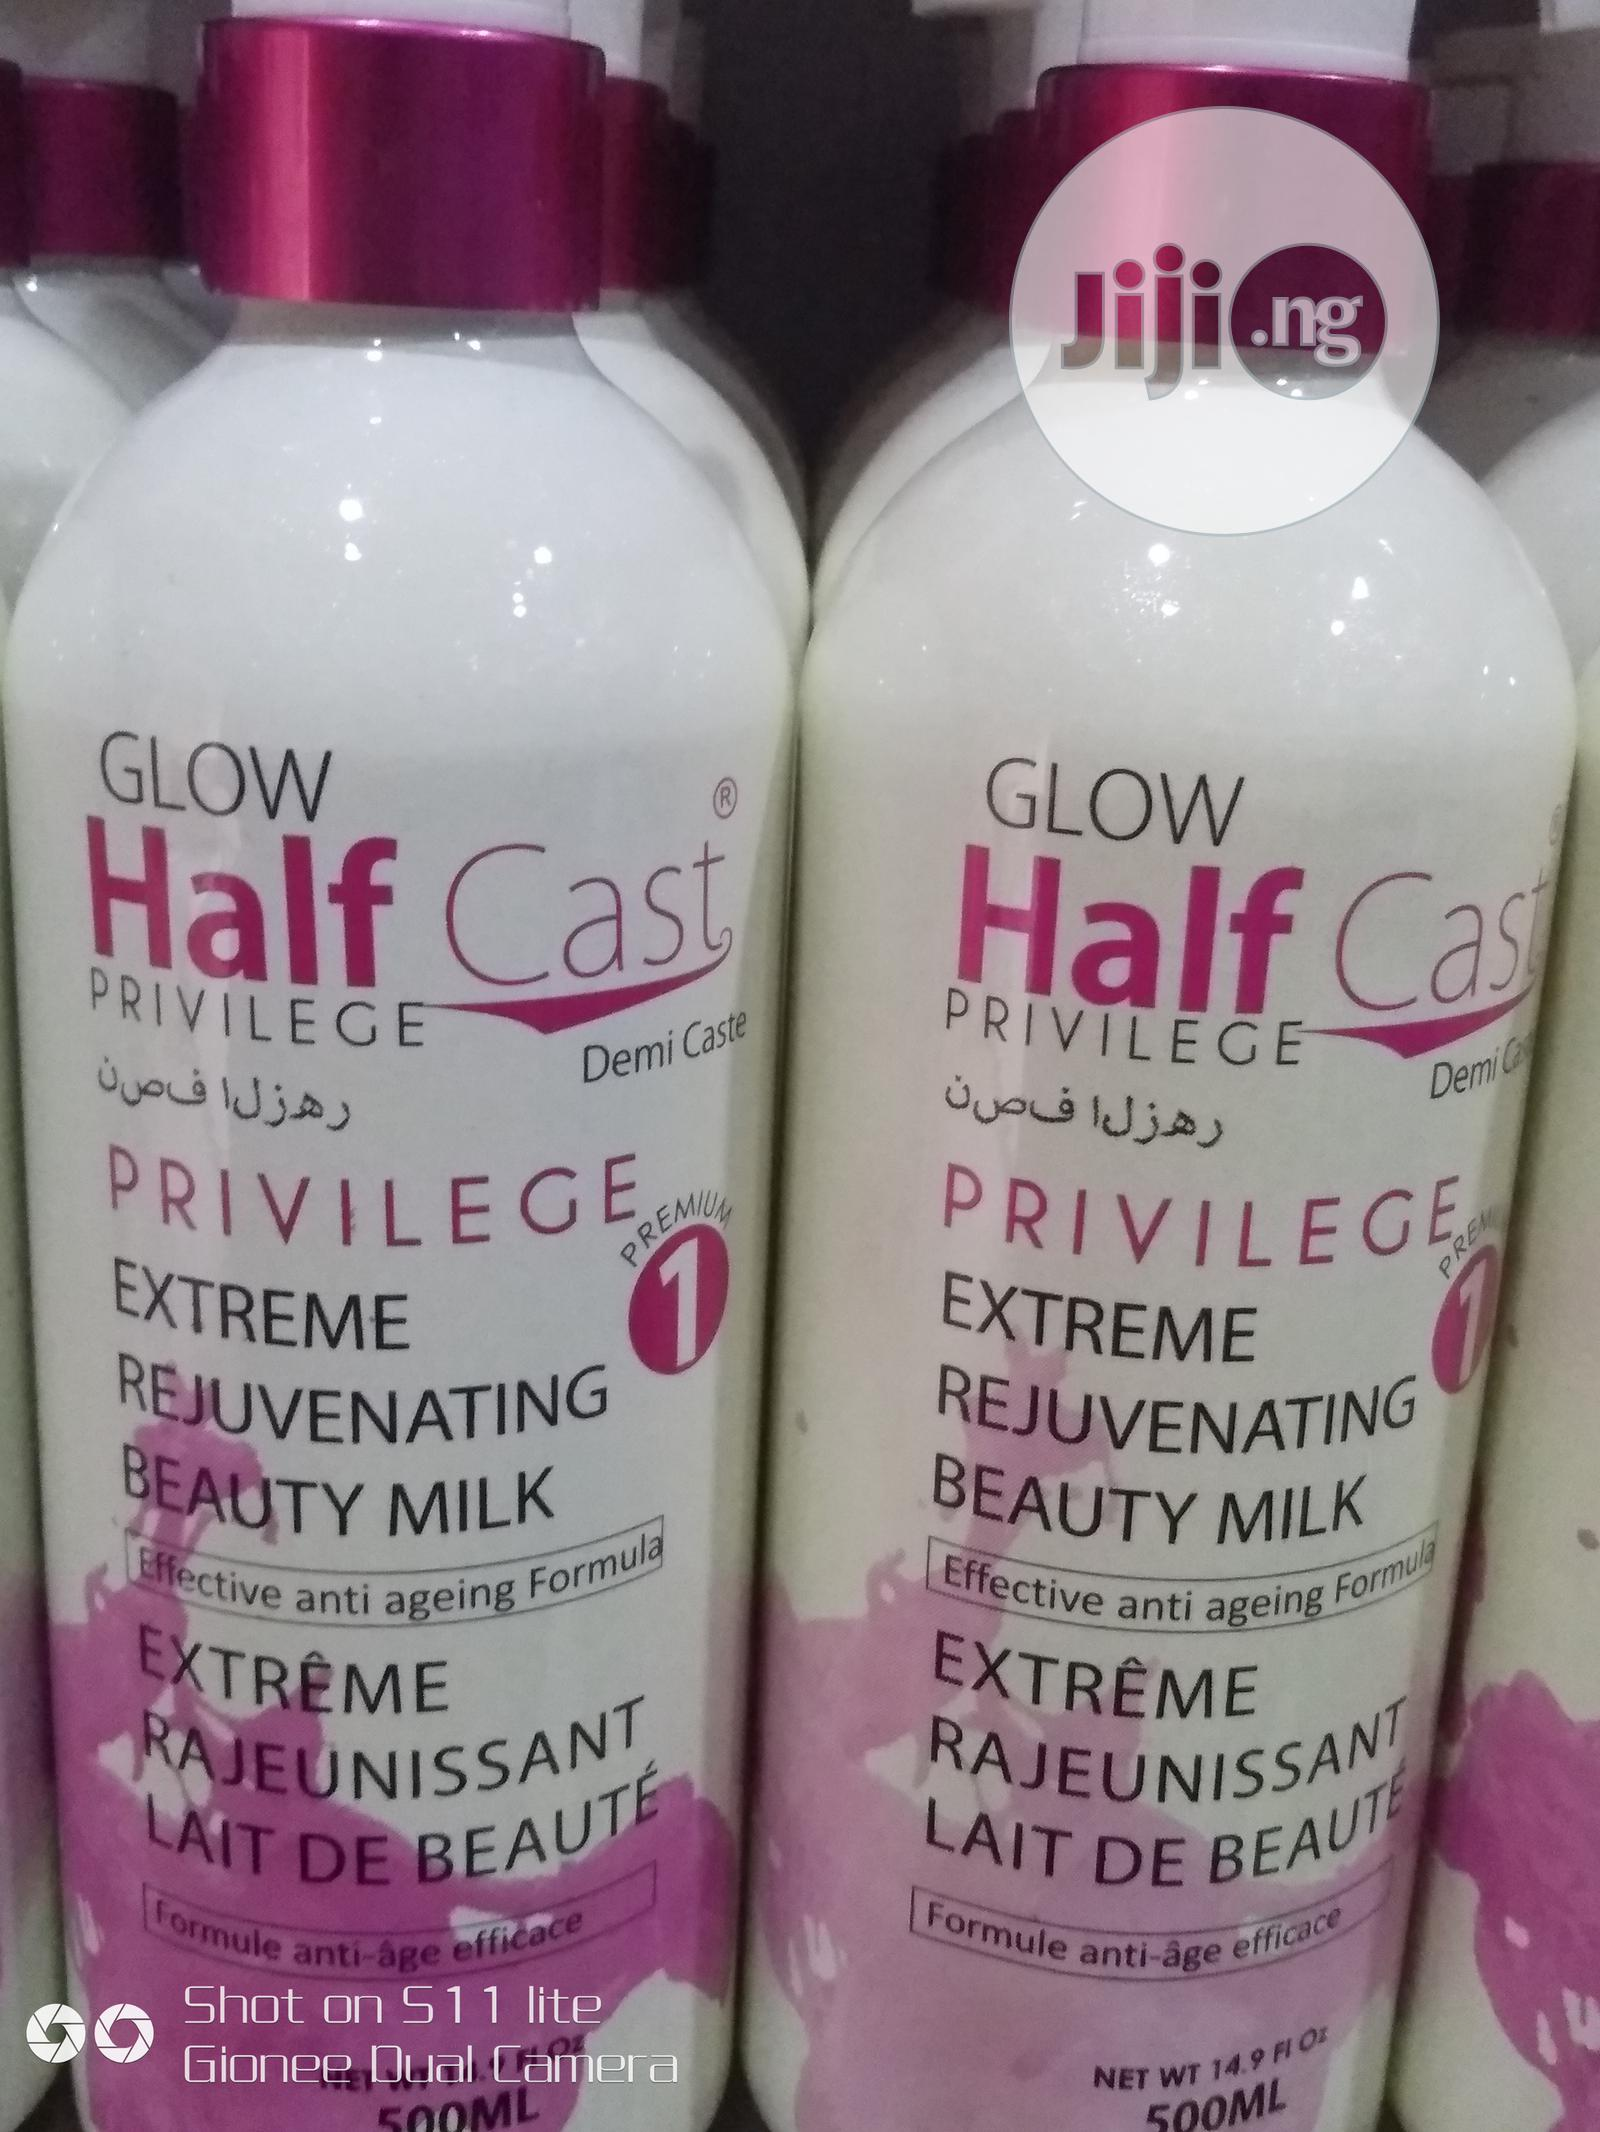 Archive: Glow Half Cast Previlege Body Lotion